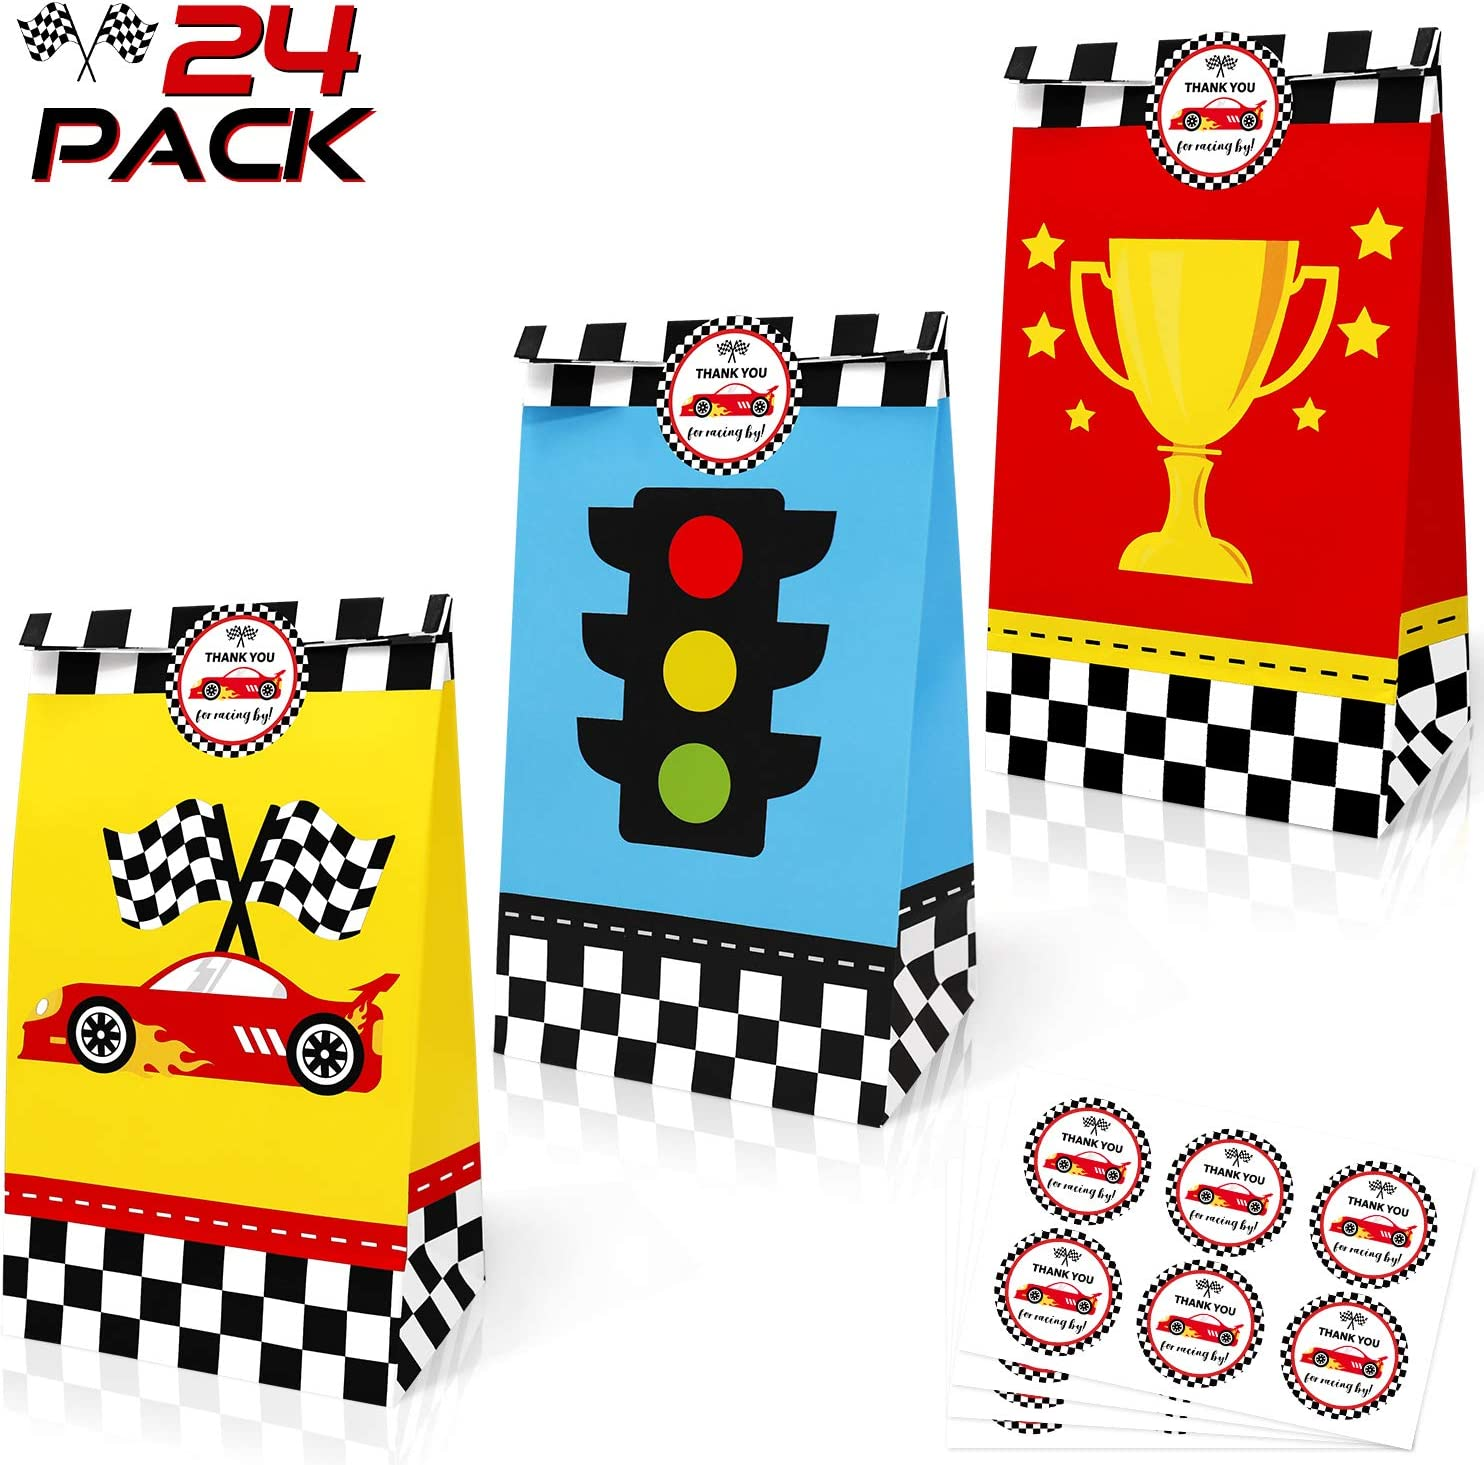 24 Pack Race Car Party Treat Bags with Thank You Stickers, Racing Pit Crew Goody Gift Bags for Let's Go Racing Party Supplies Two Fast Birthday Checkered Flags Party Decorations